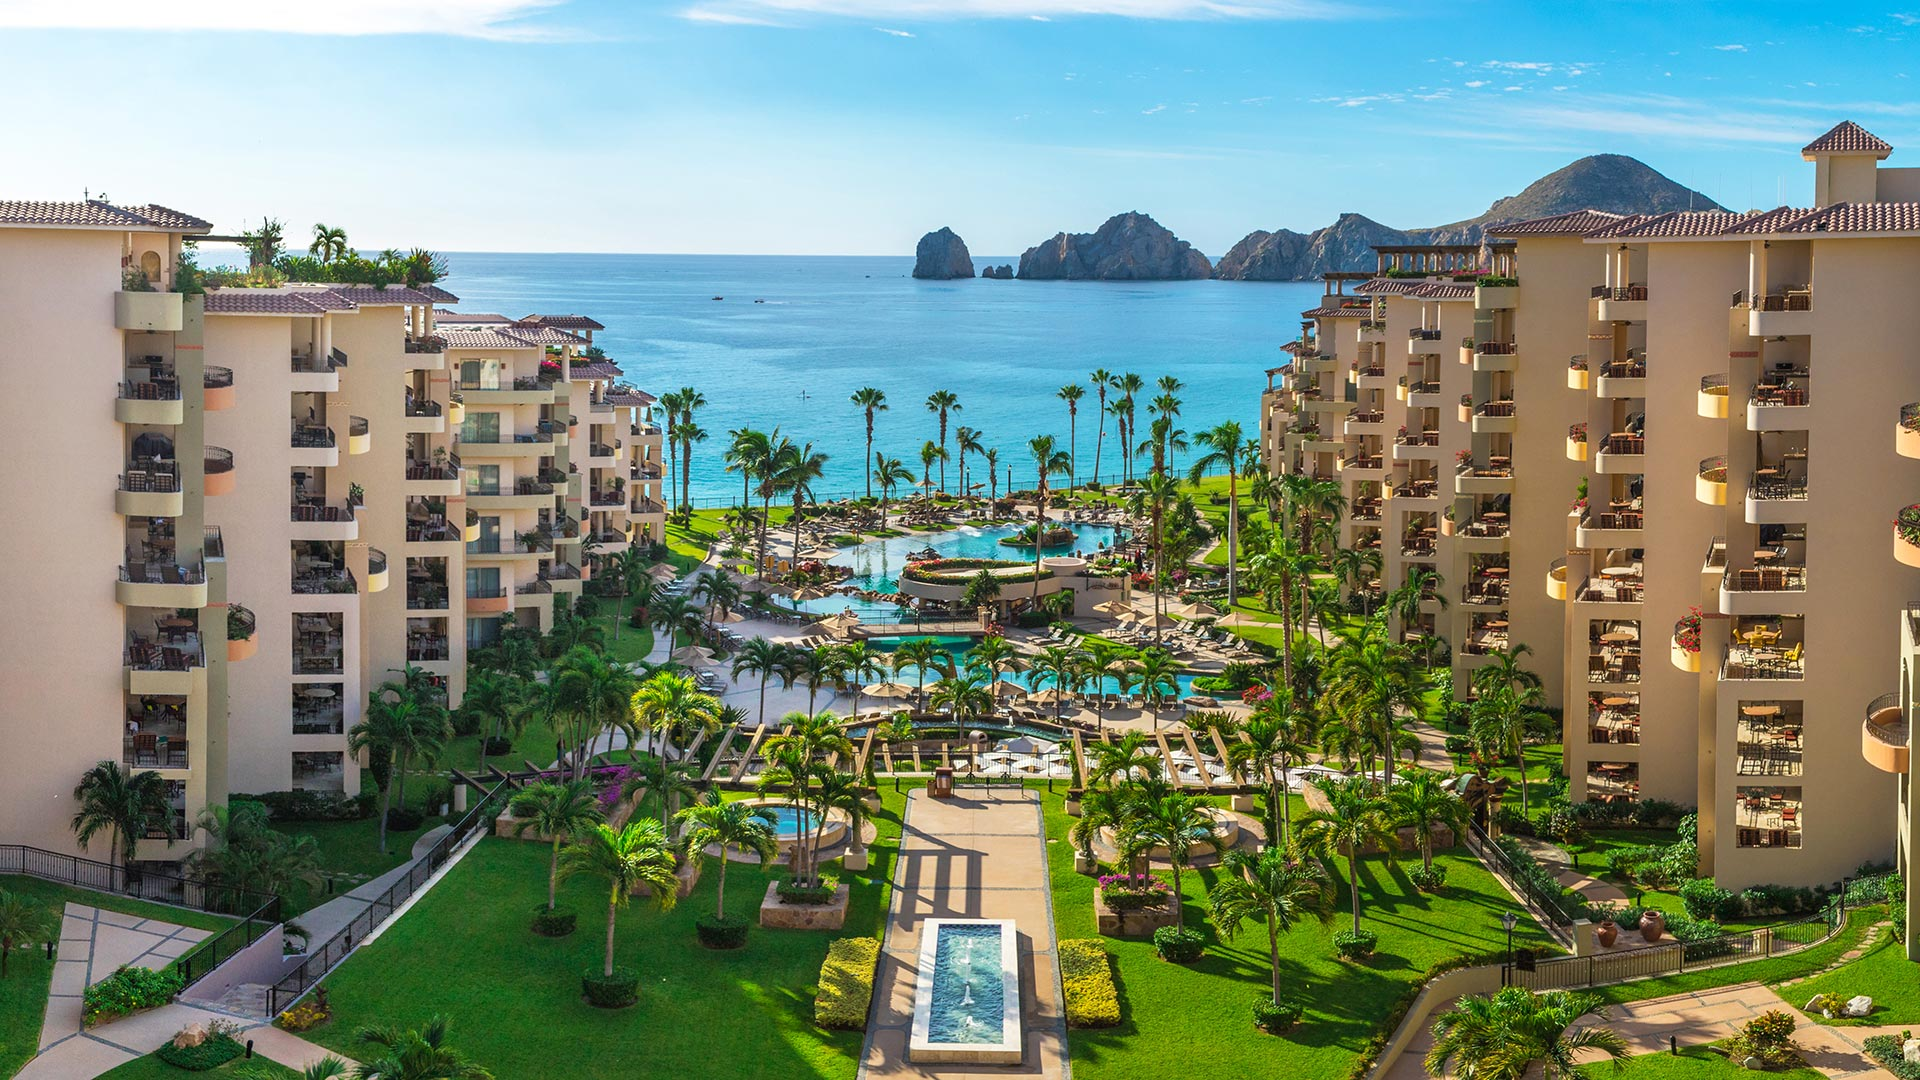 Villa La Estancia Beach Resort & Spa, Los Cabos